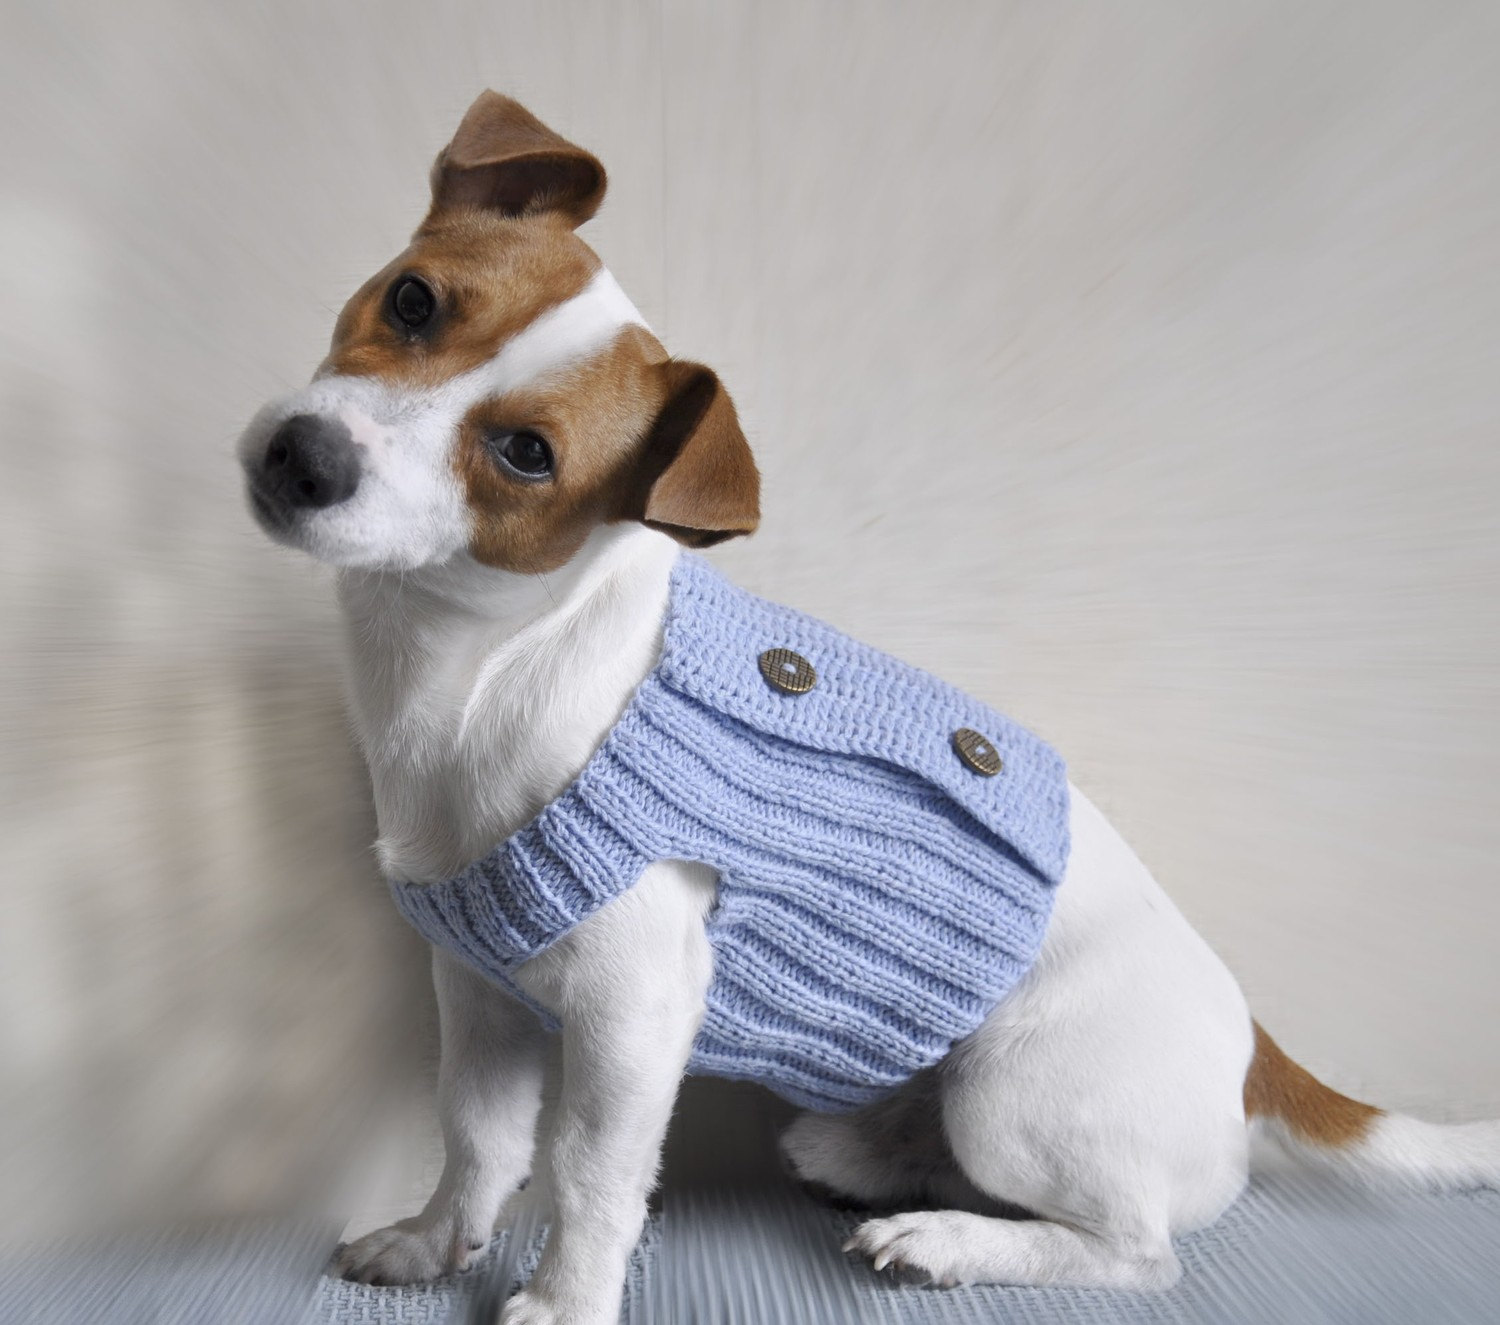 Dog With Sweater photo - 2